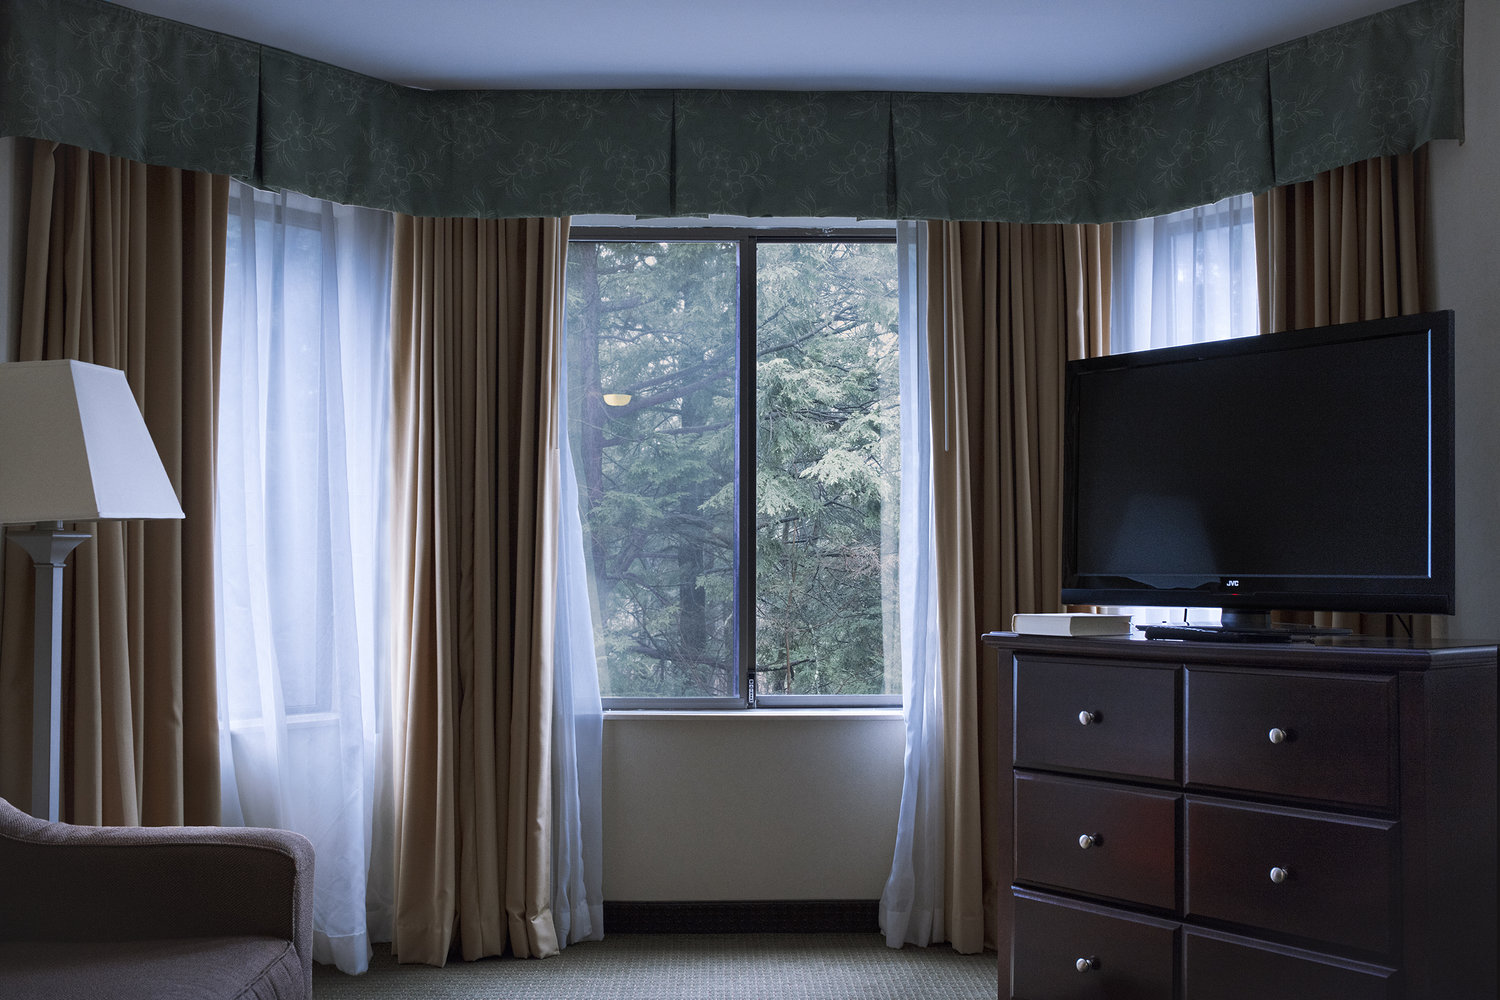 Quality_Inn_Window_Hemlocks_4187_WEB.jpg